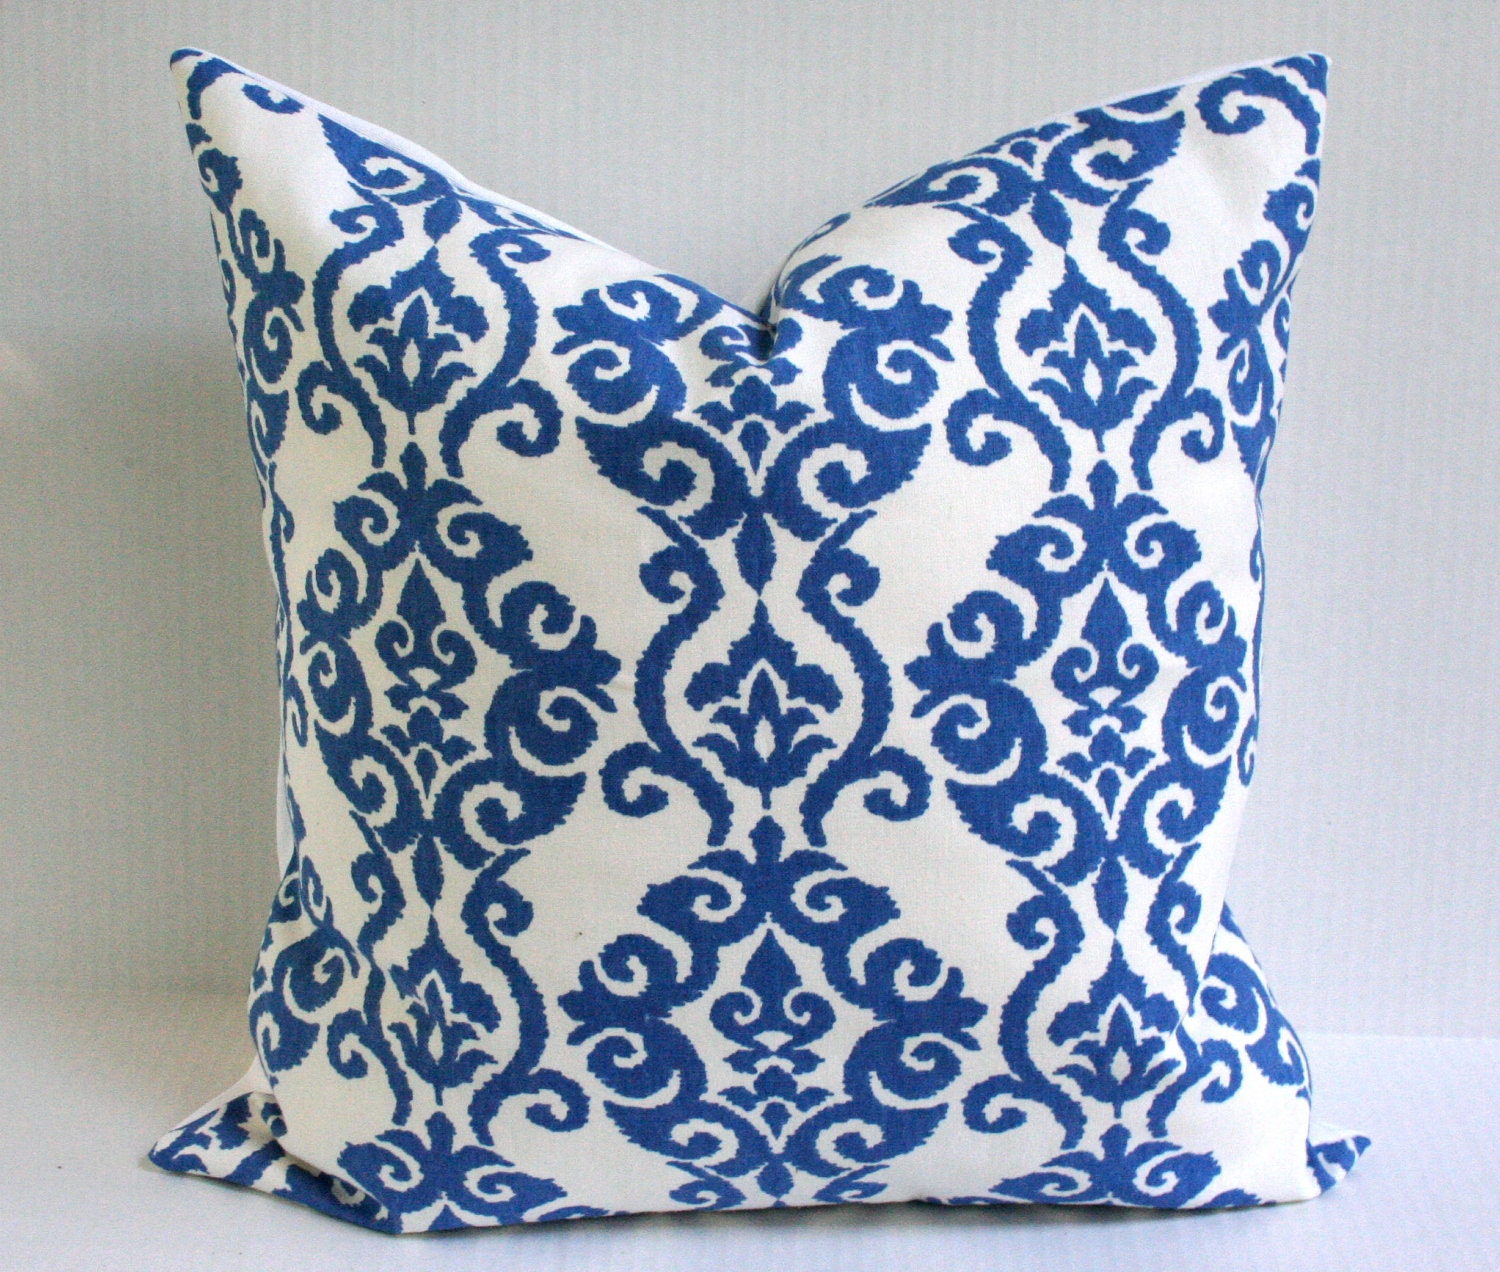 Royal Blue And White Throw Pillows : Ikat Print Accent Pillow Crisp White and Royal Blue by Plumed